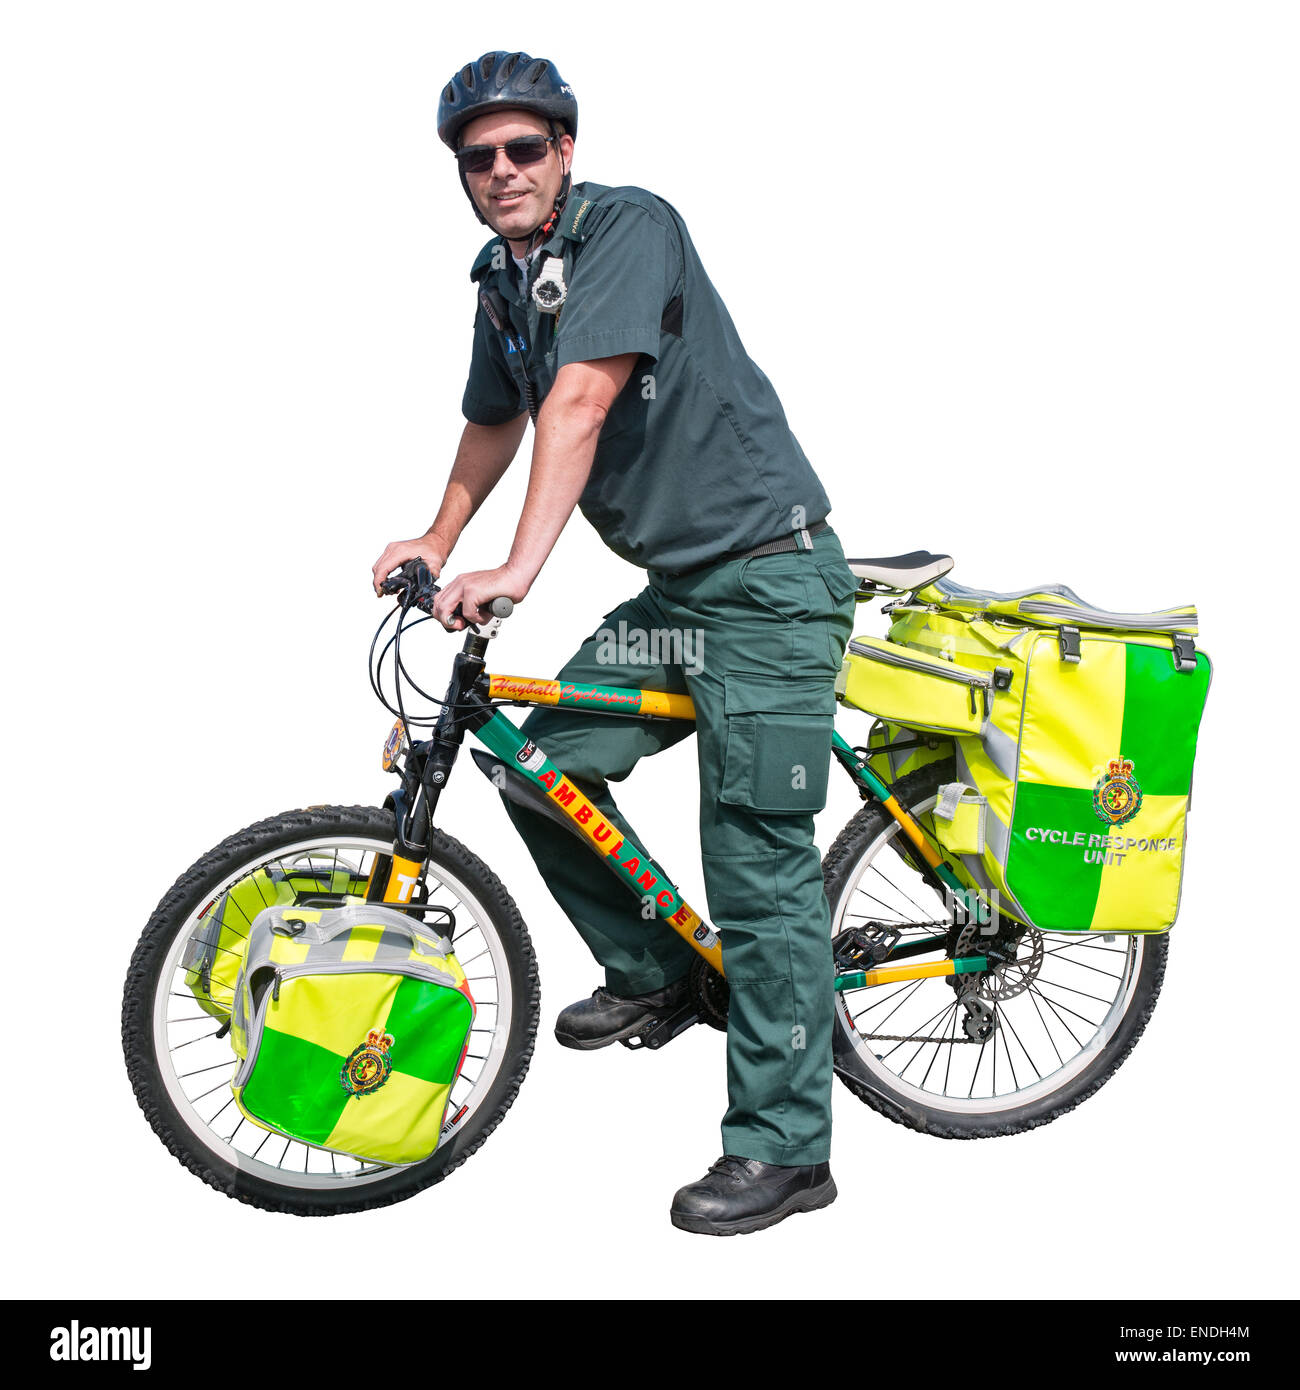 A cut out of a Wiltshire NHS trust paramedic on a Cycle Response Unit - Stock Image